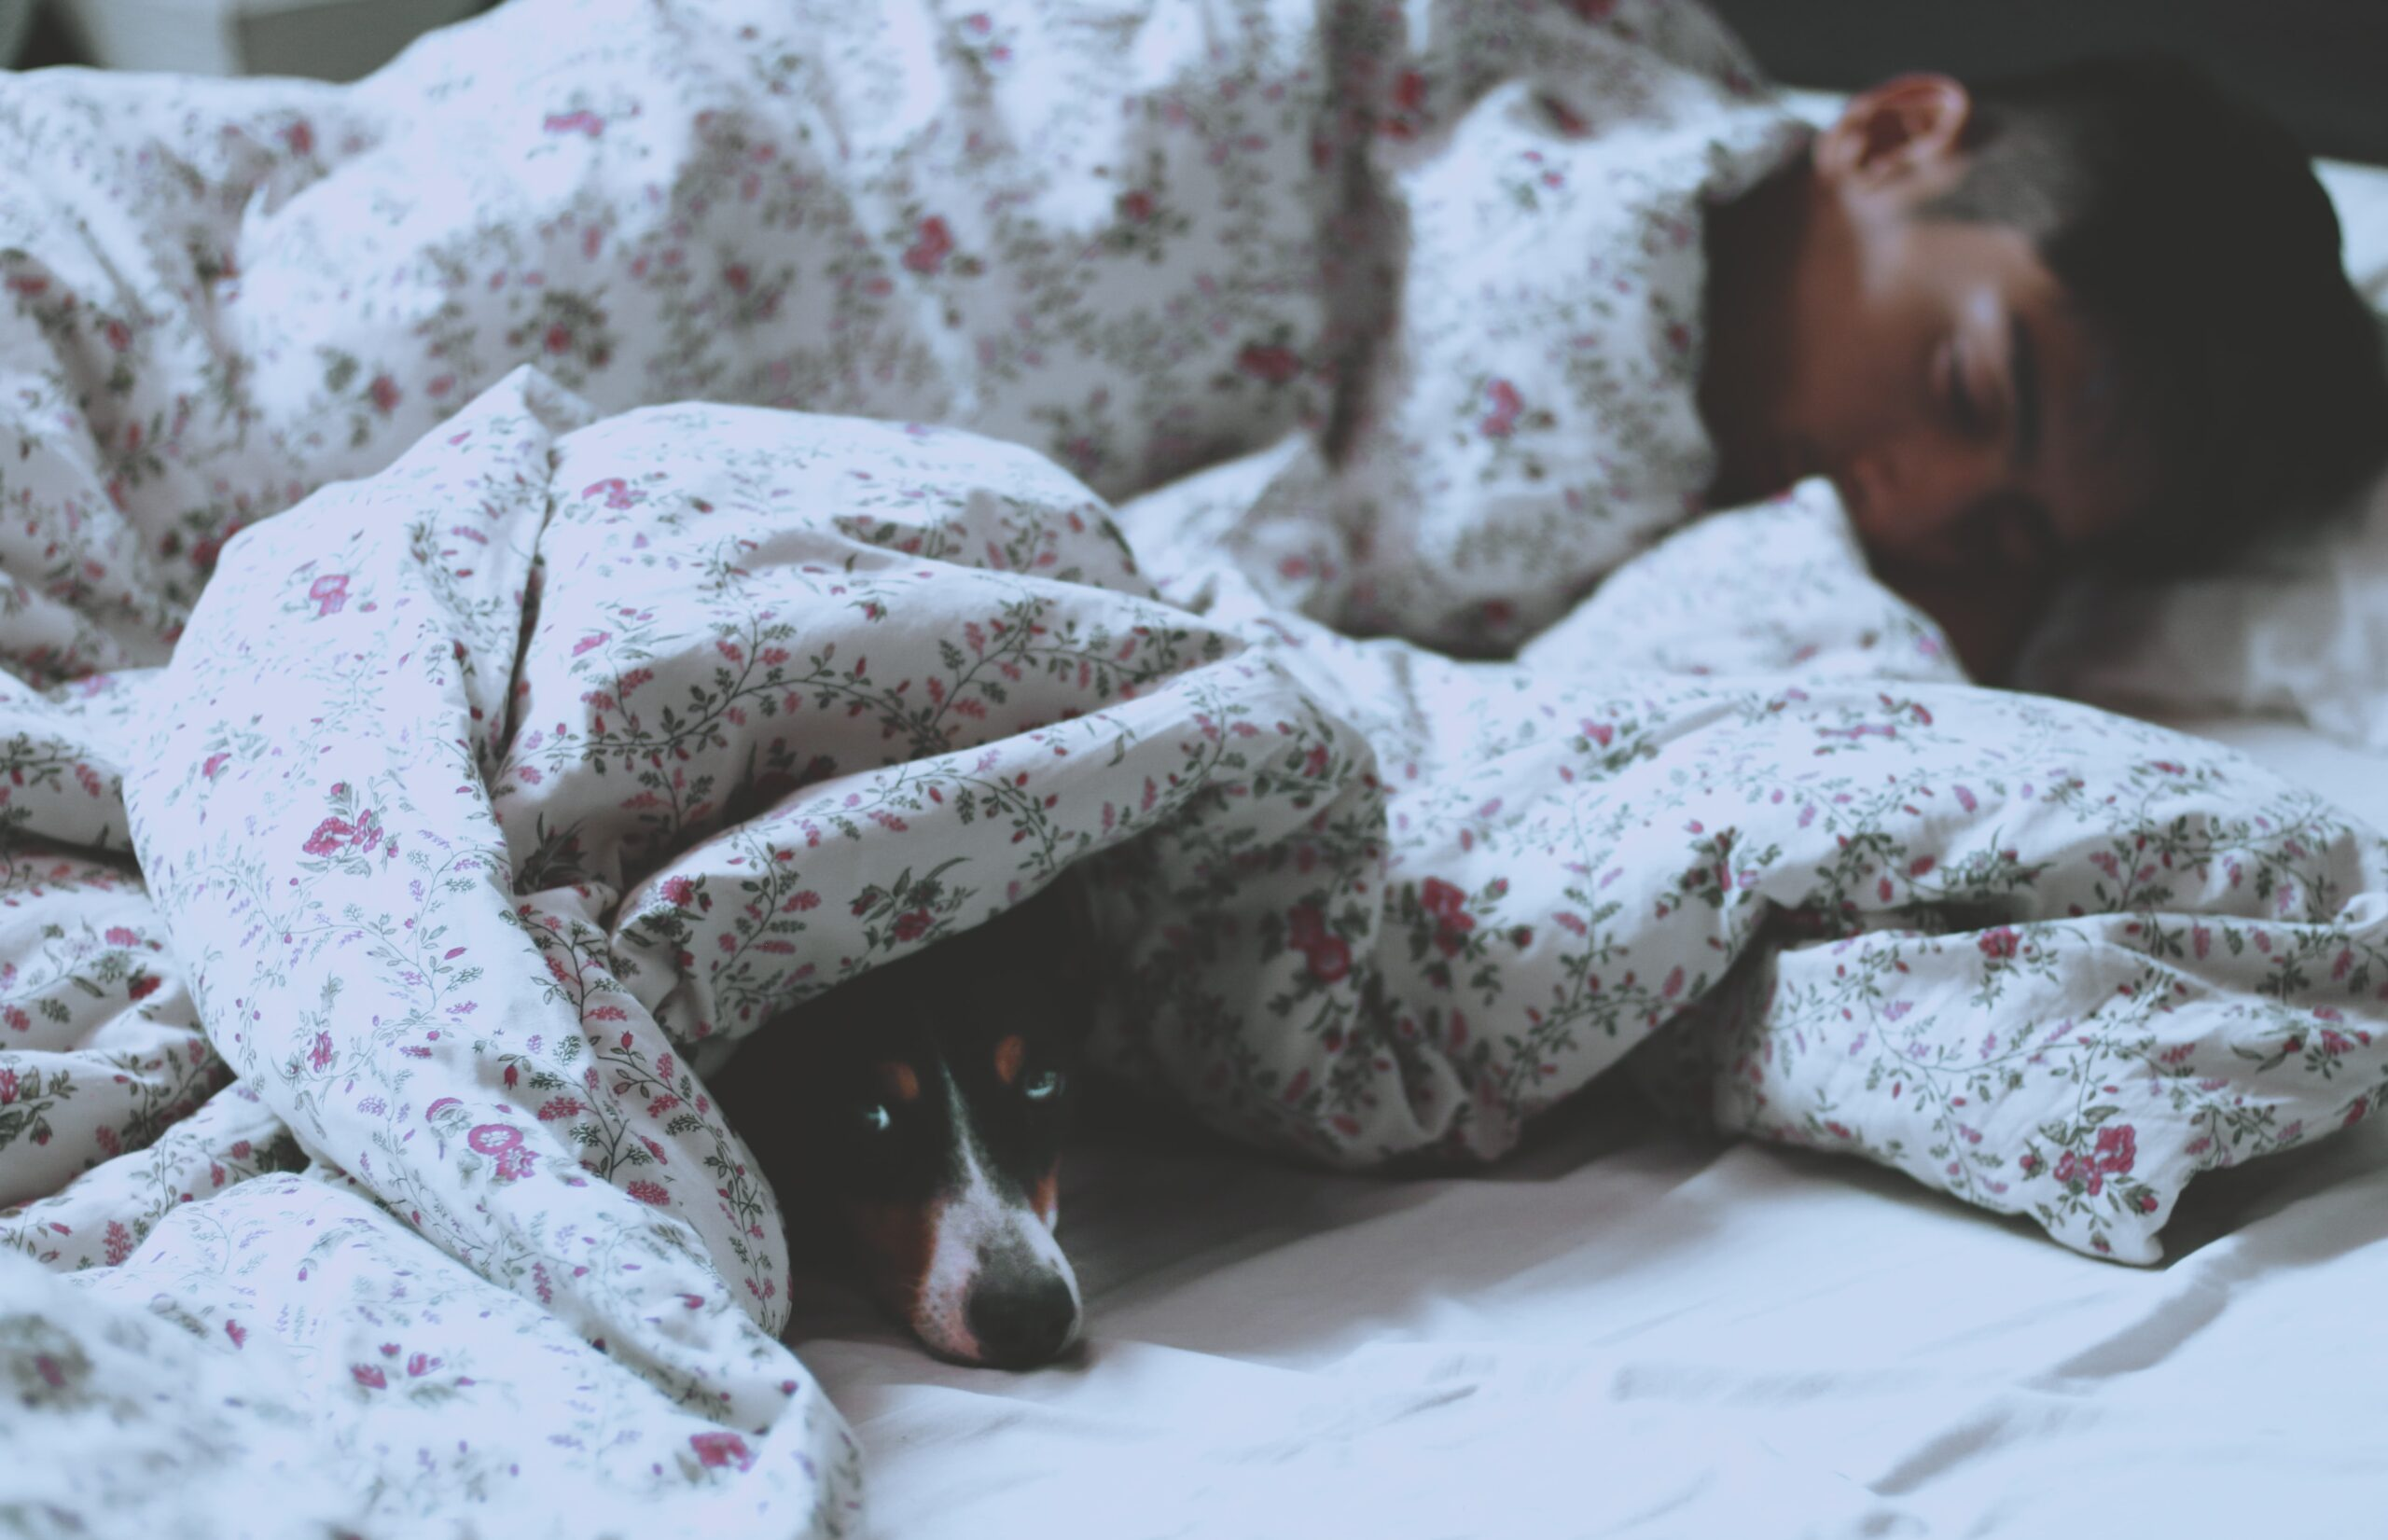 Dog Sleeping in Bed with scented pillows and sheets